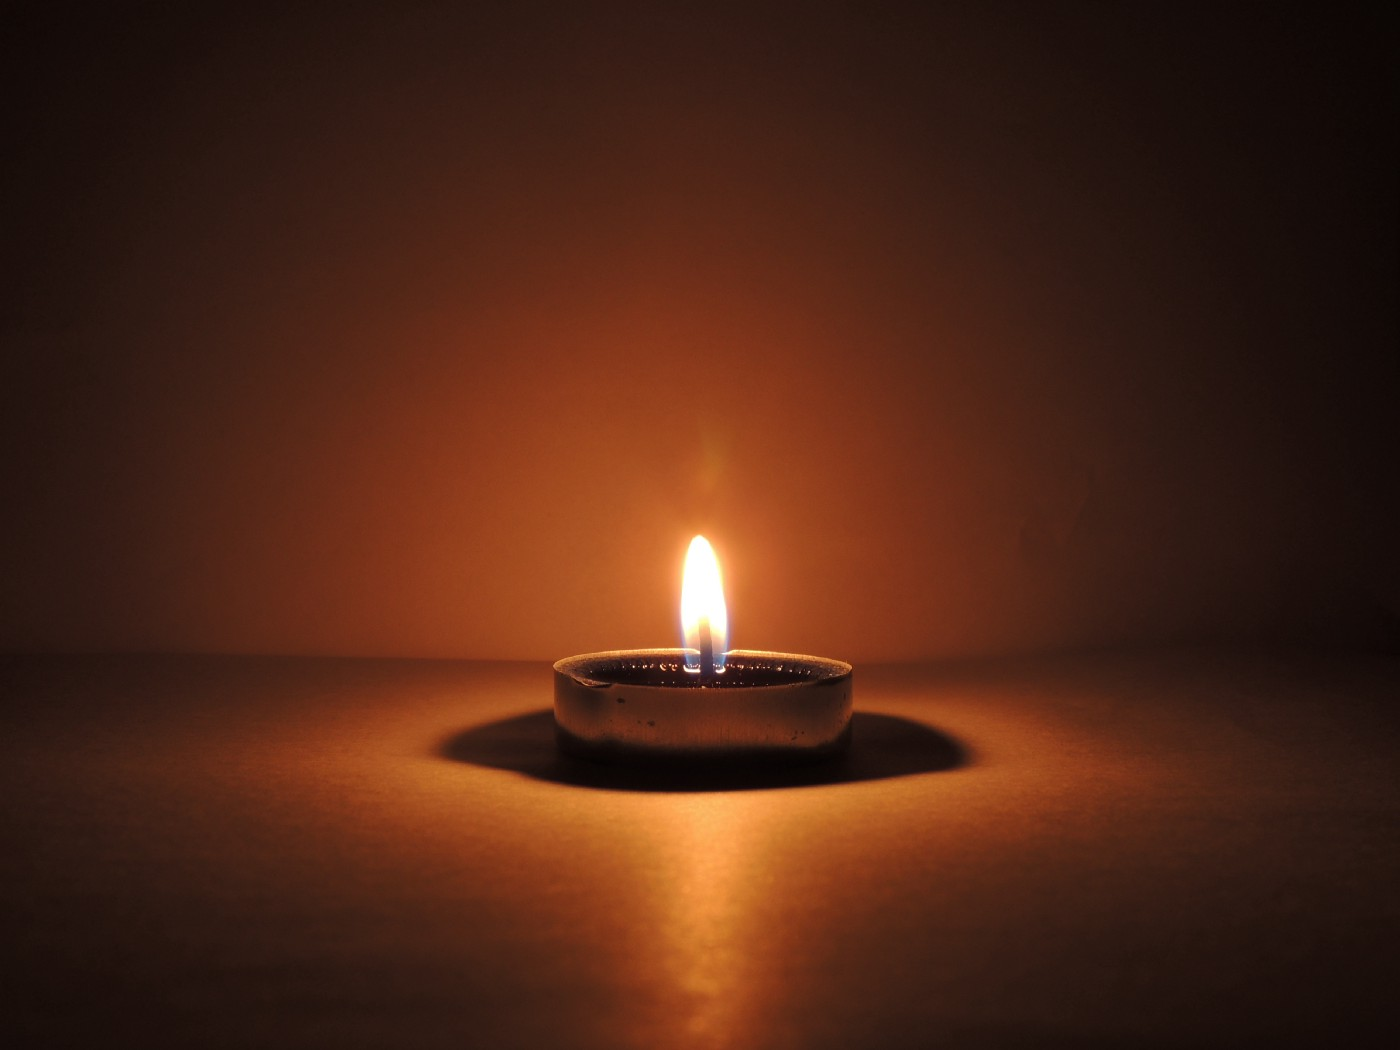 A single lighted candle glowing in a dark room.